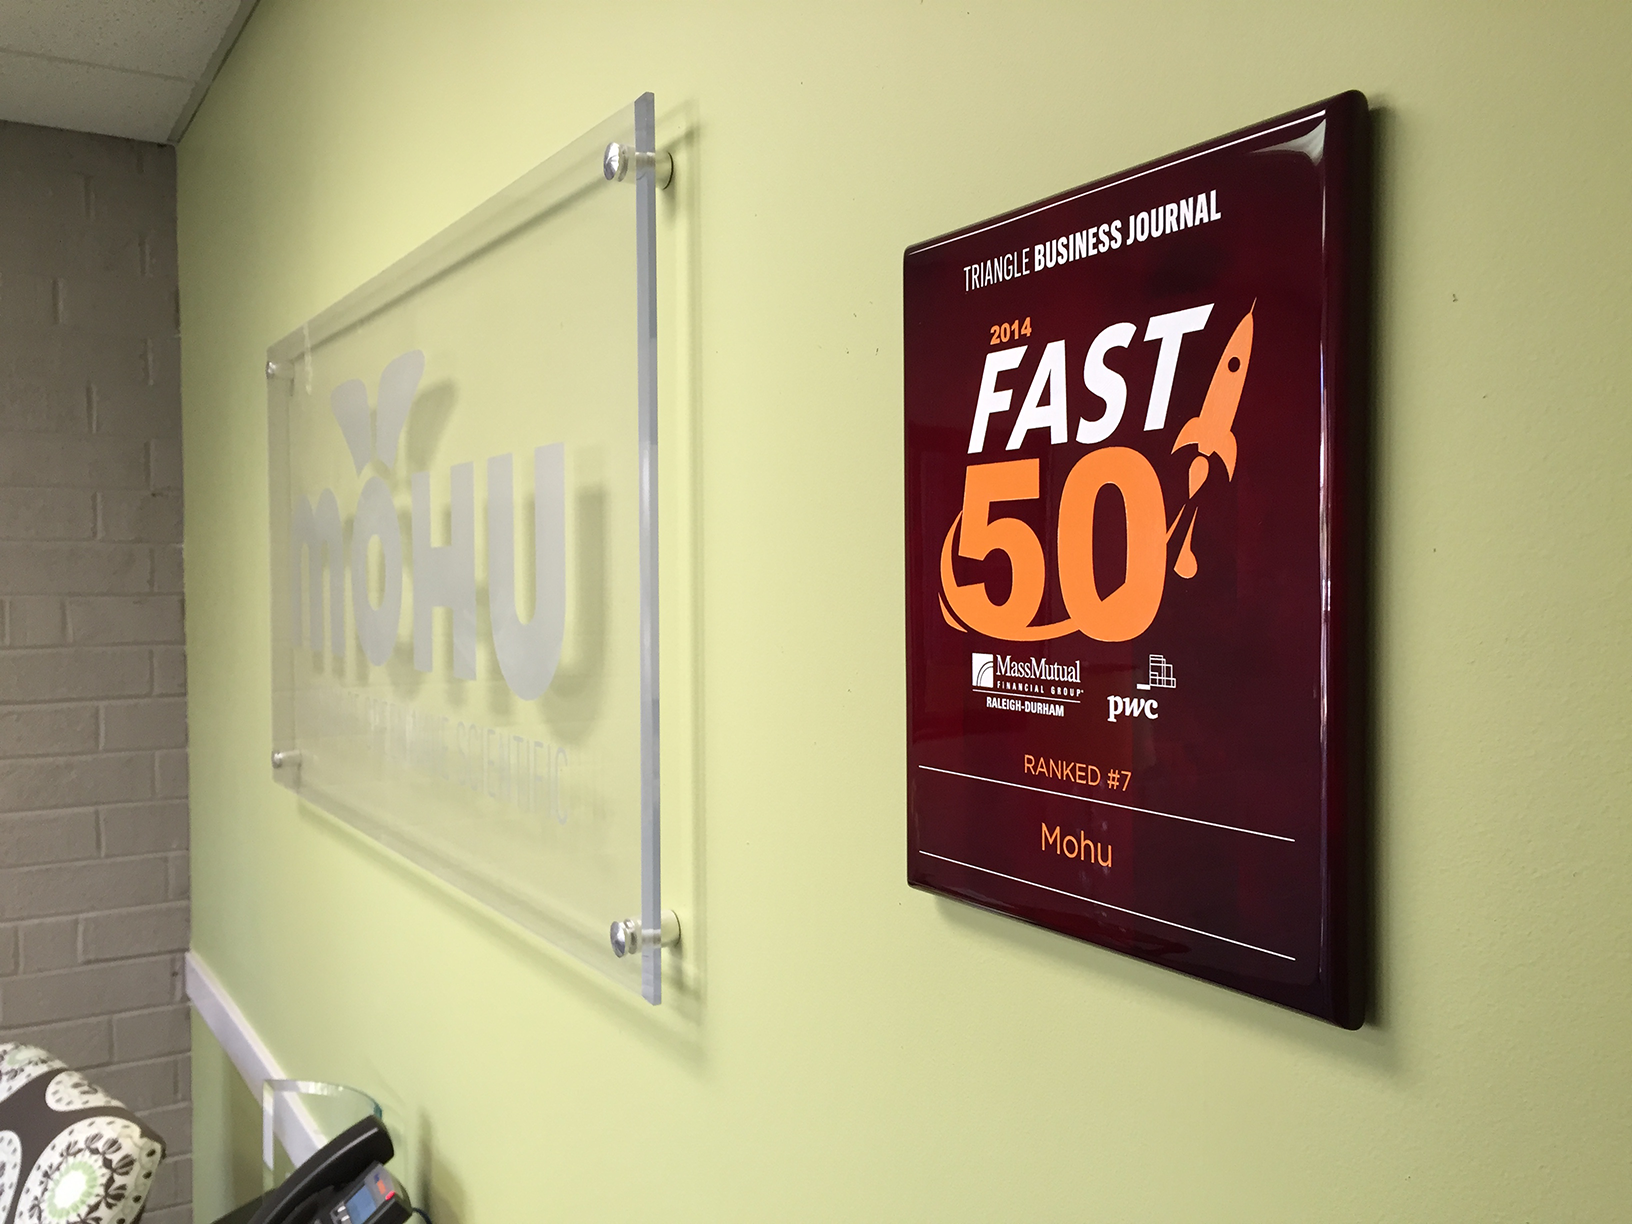 Mohu - 2014 Triangle Business Journal Fast 50 Awards